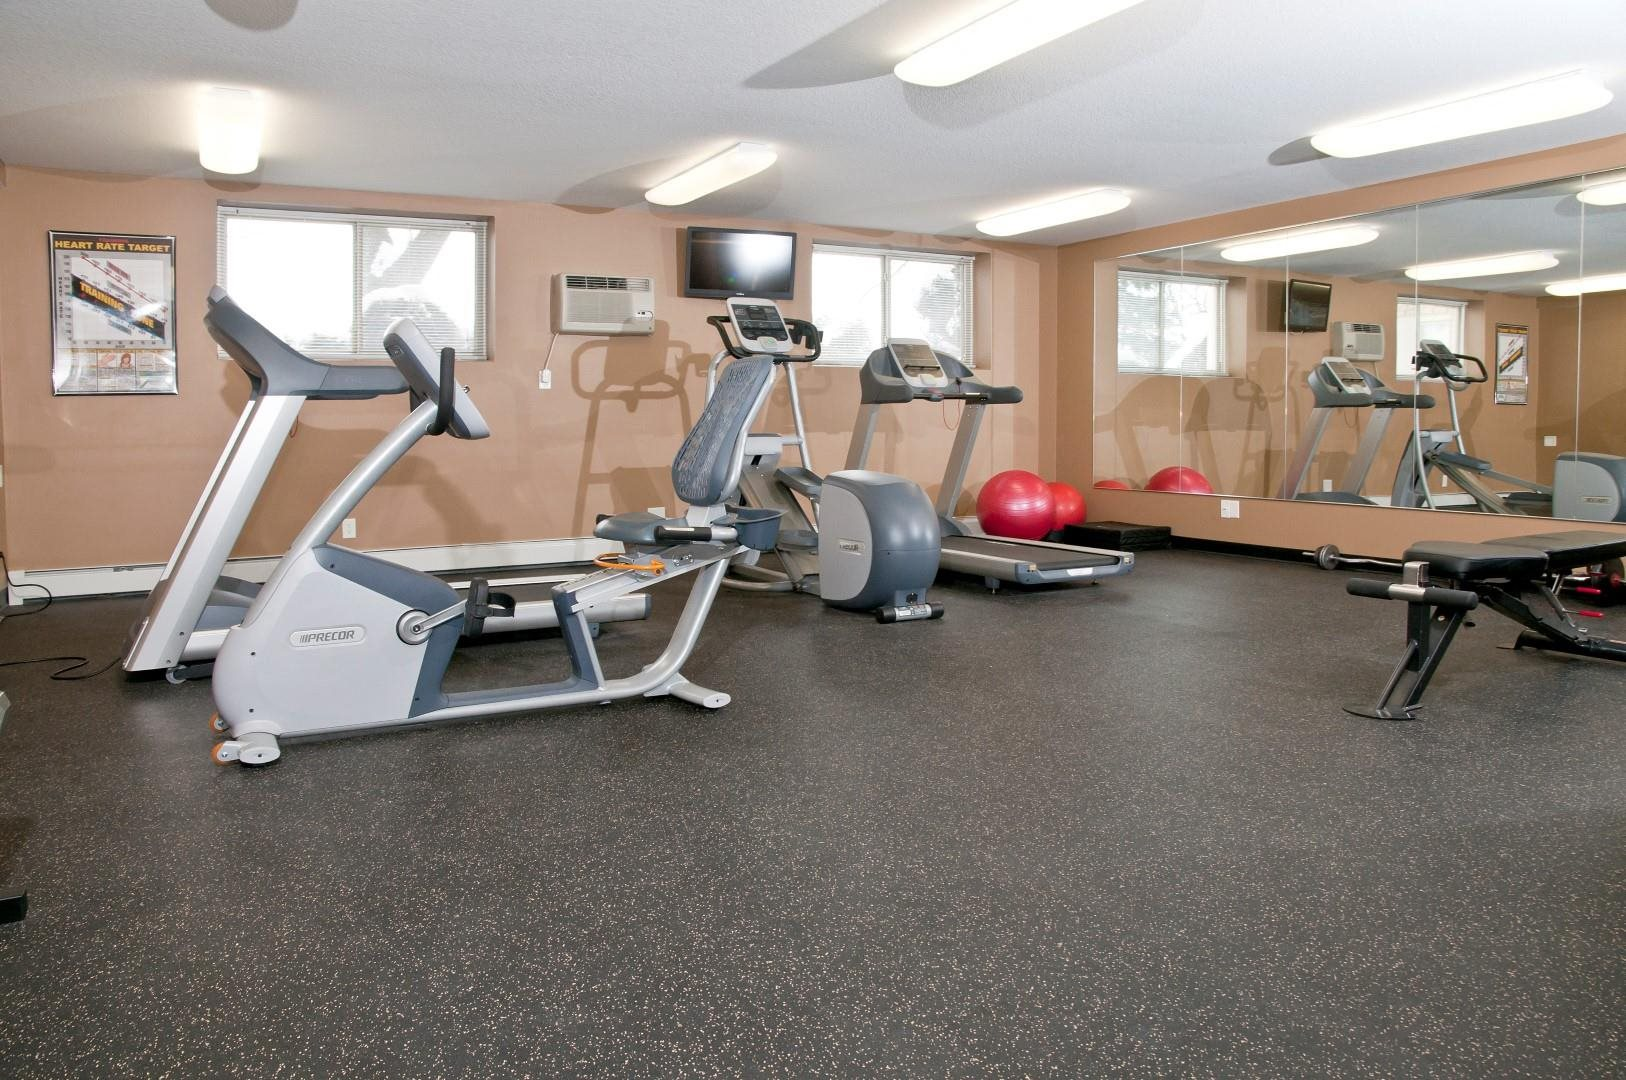 Bass Lake Crossing Fitness Center With Floor To Ceiling Mirrors on Full Wall and Aerobic Equipment